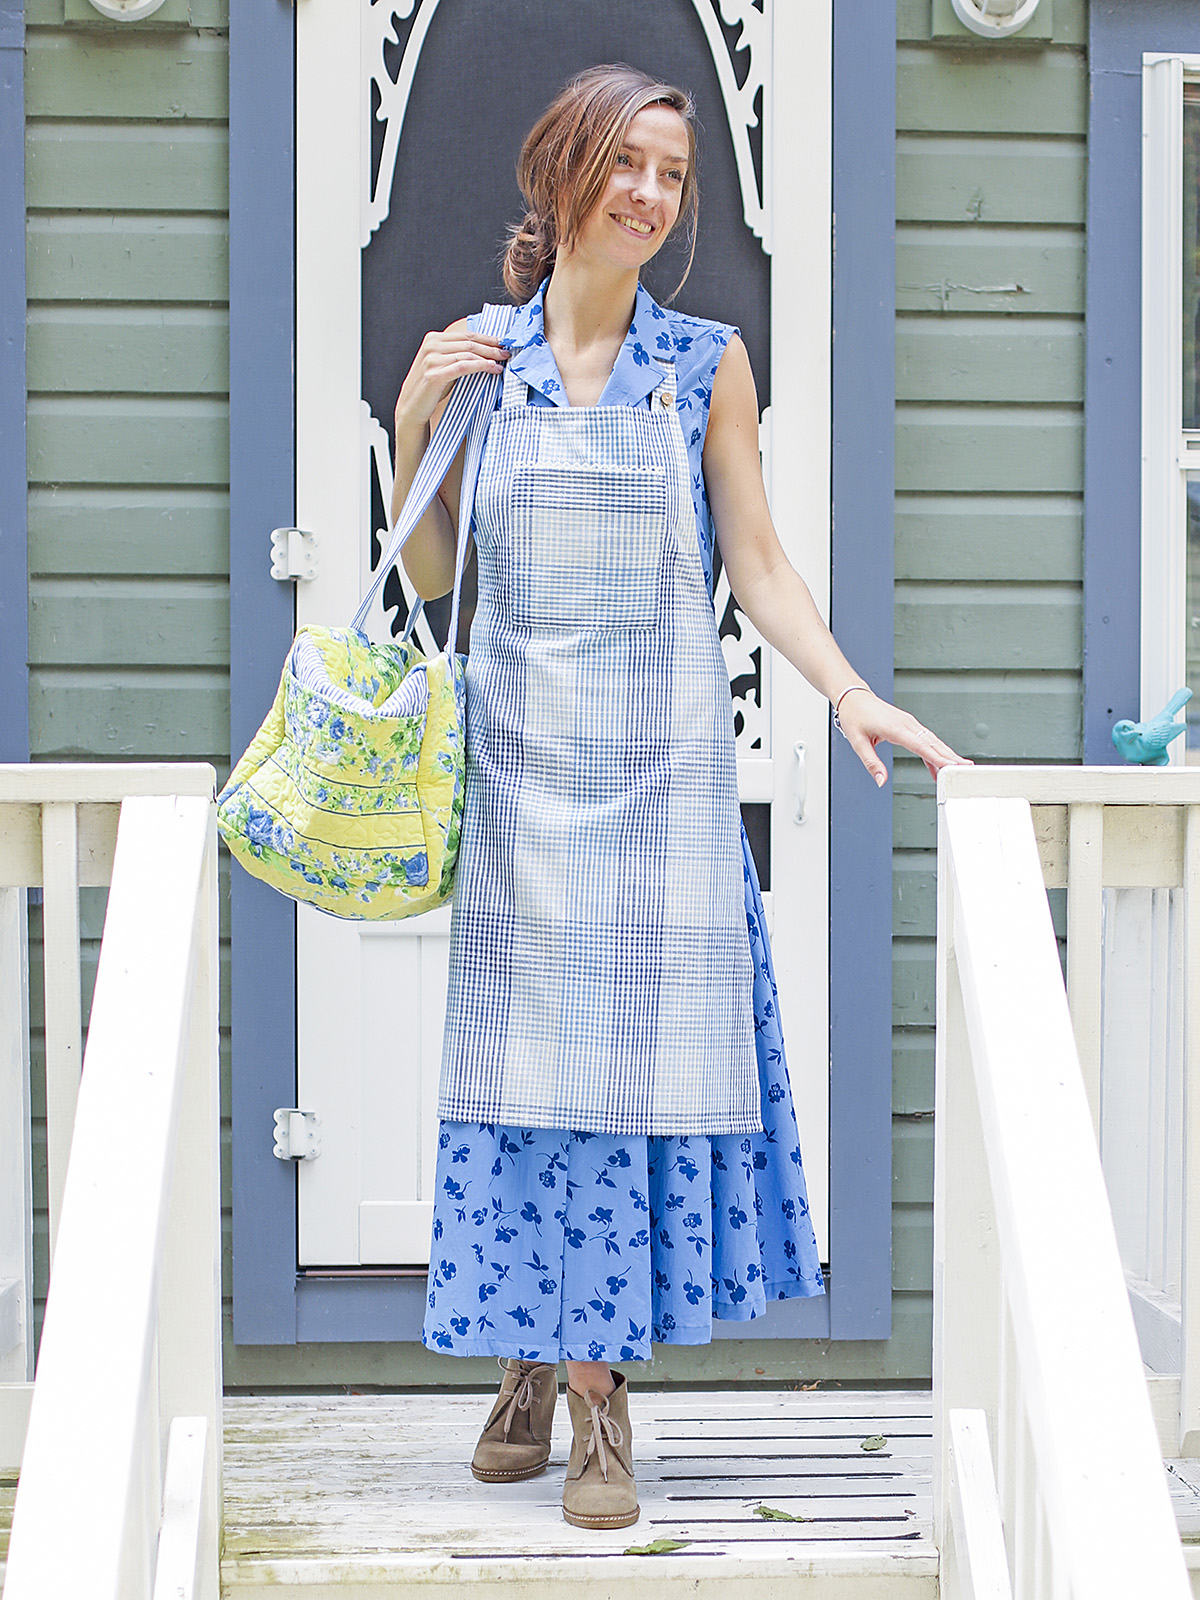 Bluebell Chef Apron